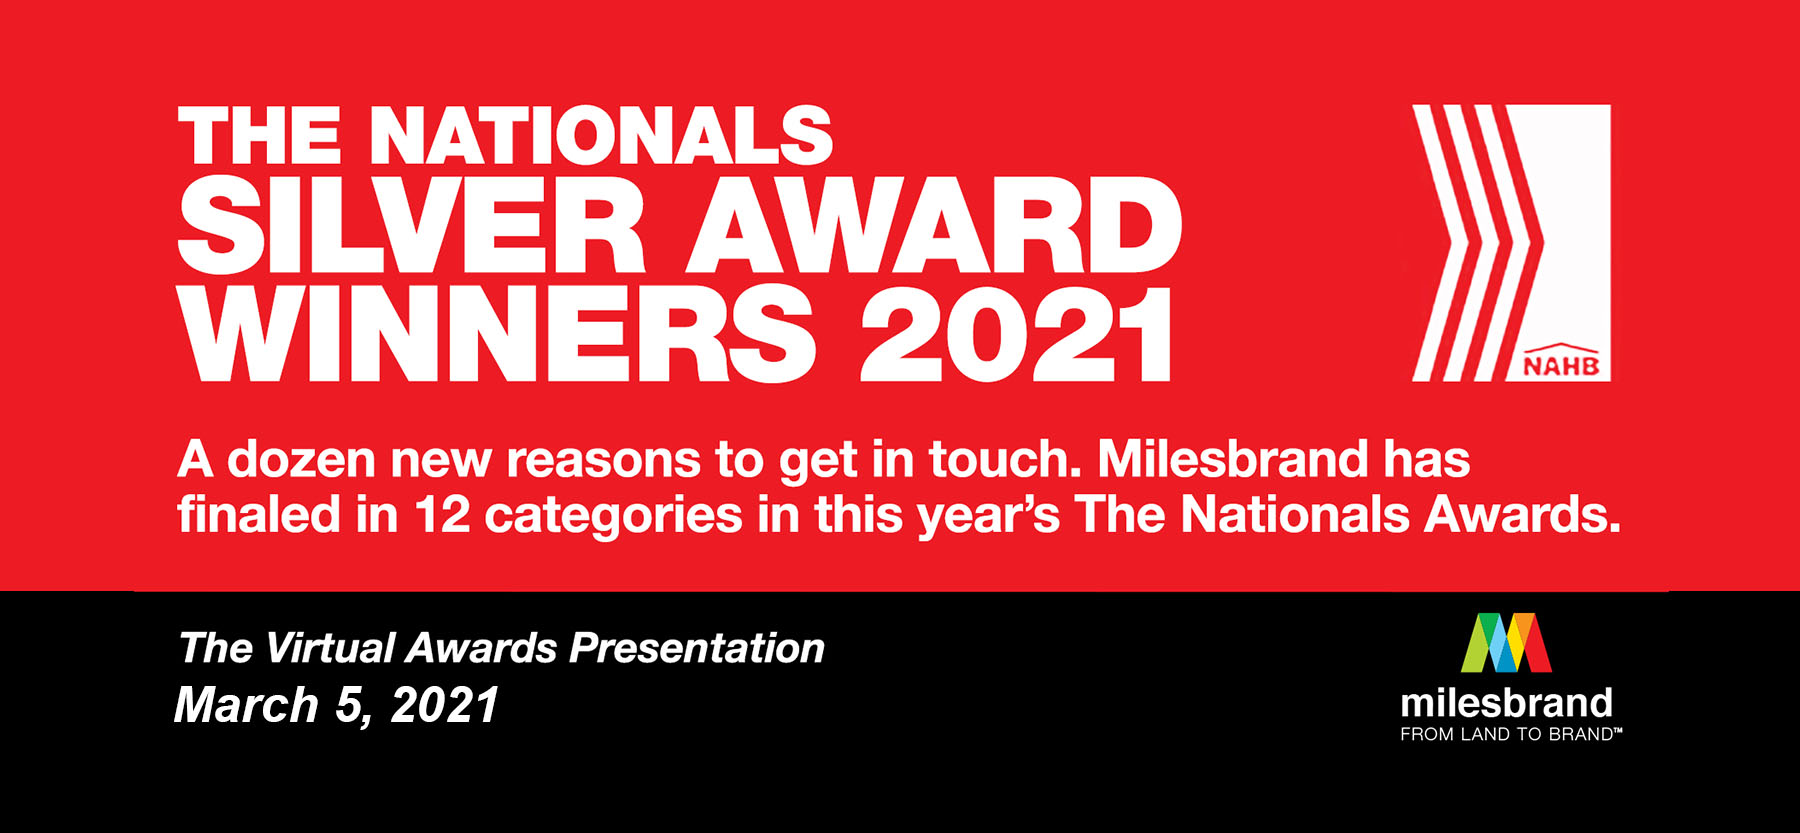 The Nationals Silver Award Winners 2021